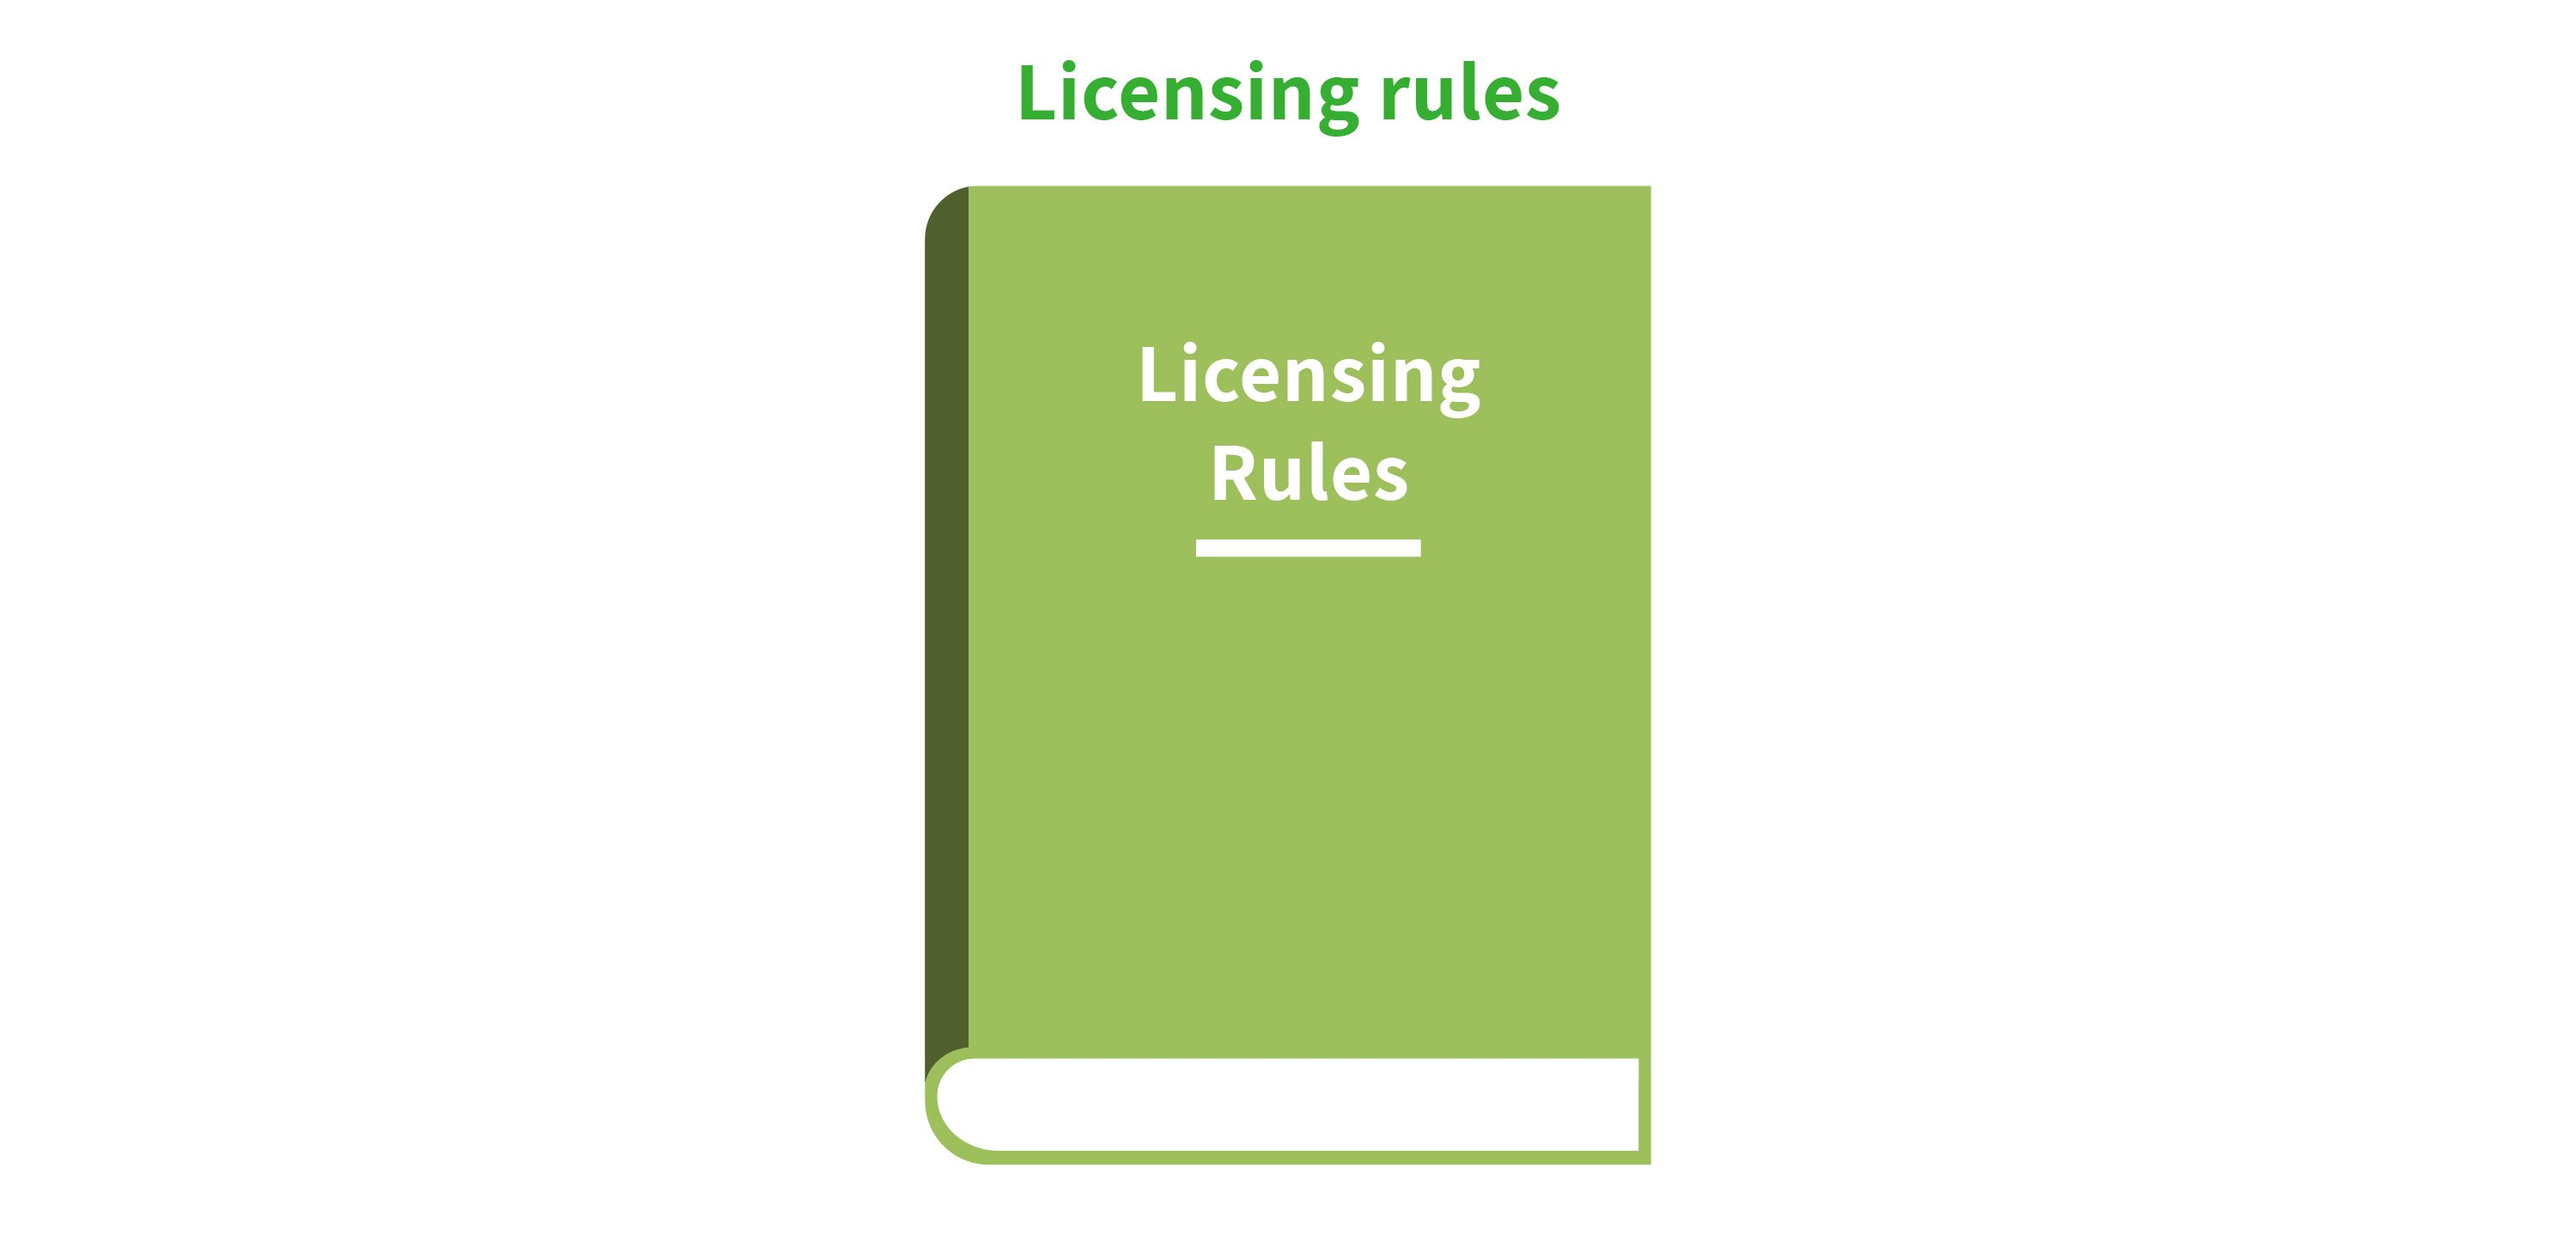 Graphic illustration of licensing rules book.